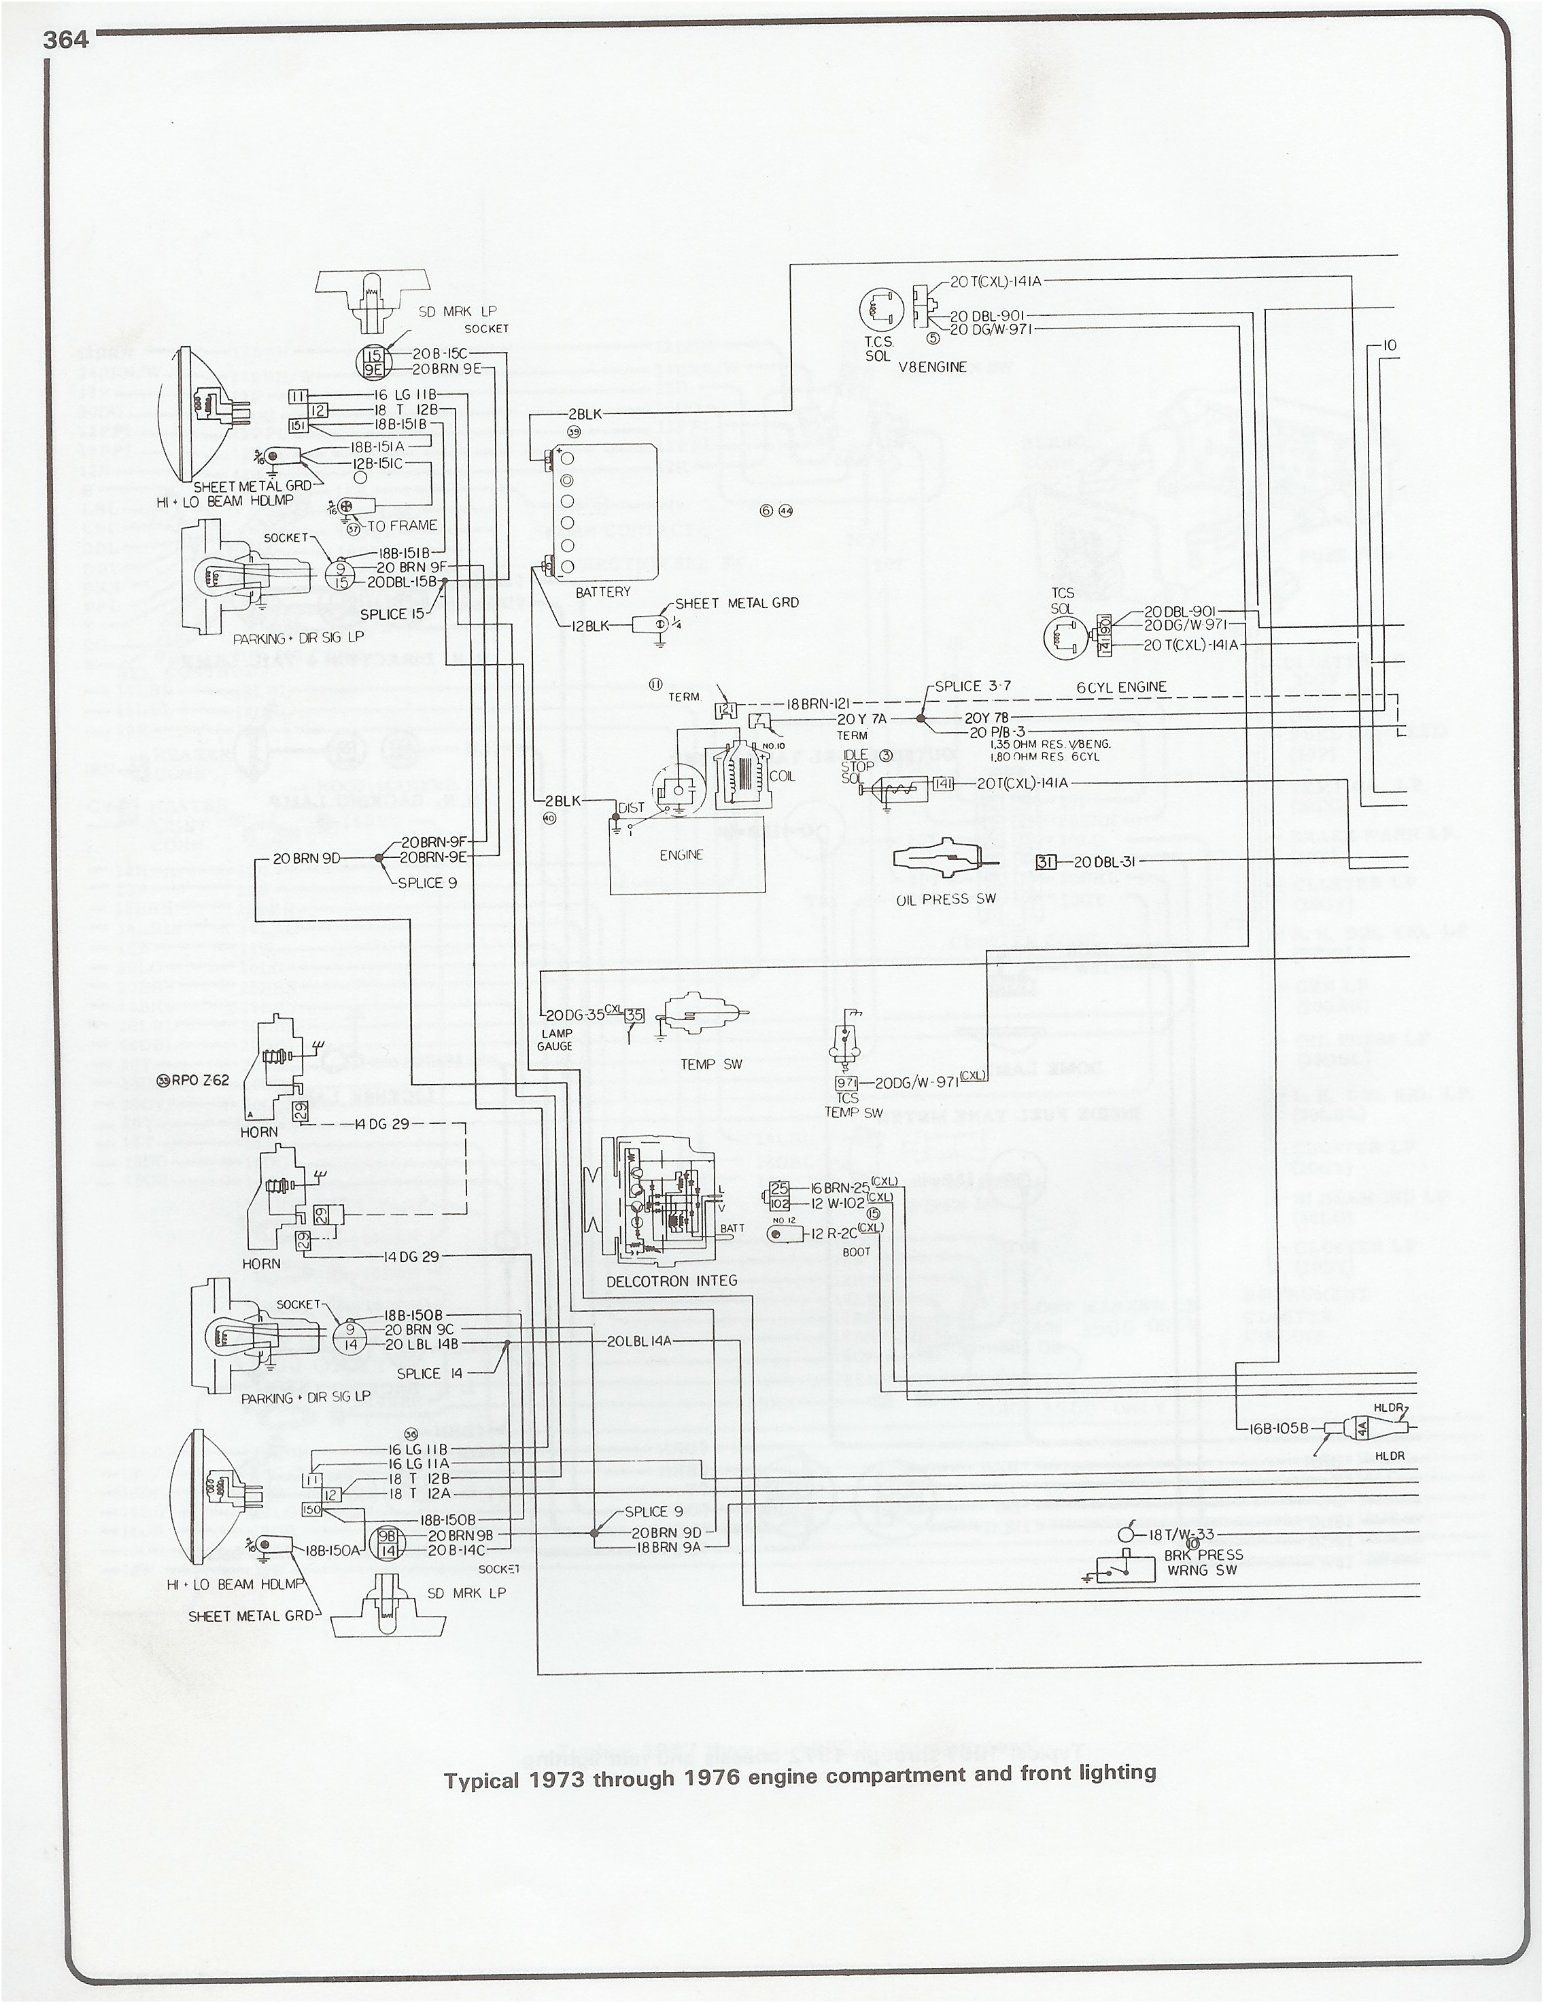 1977 Chevy 2500 Wiring Diagram - Jeep Howell Tbi Wiring Harness for Wiring  Diagram SchematicsWiring Diagram Schematics